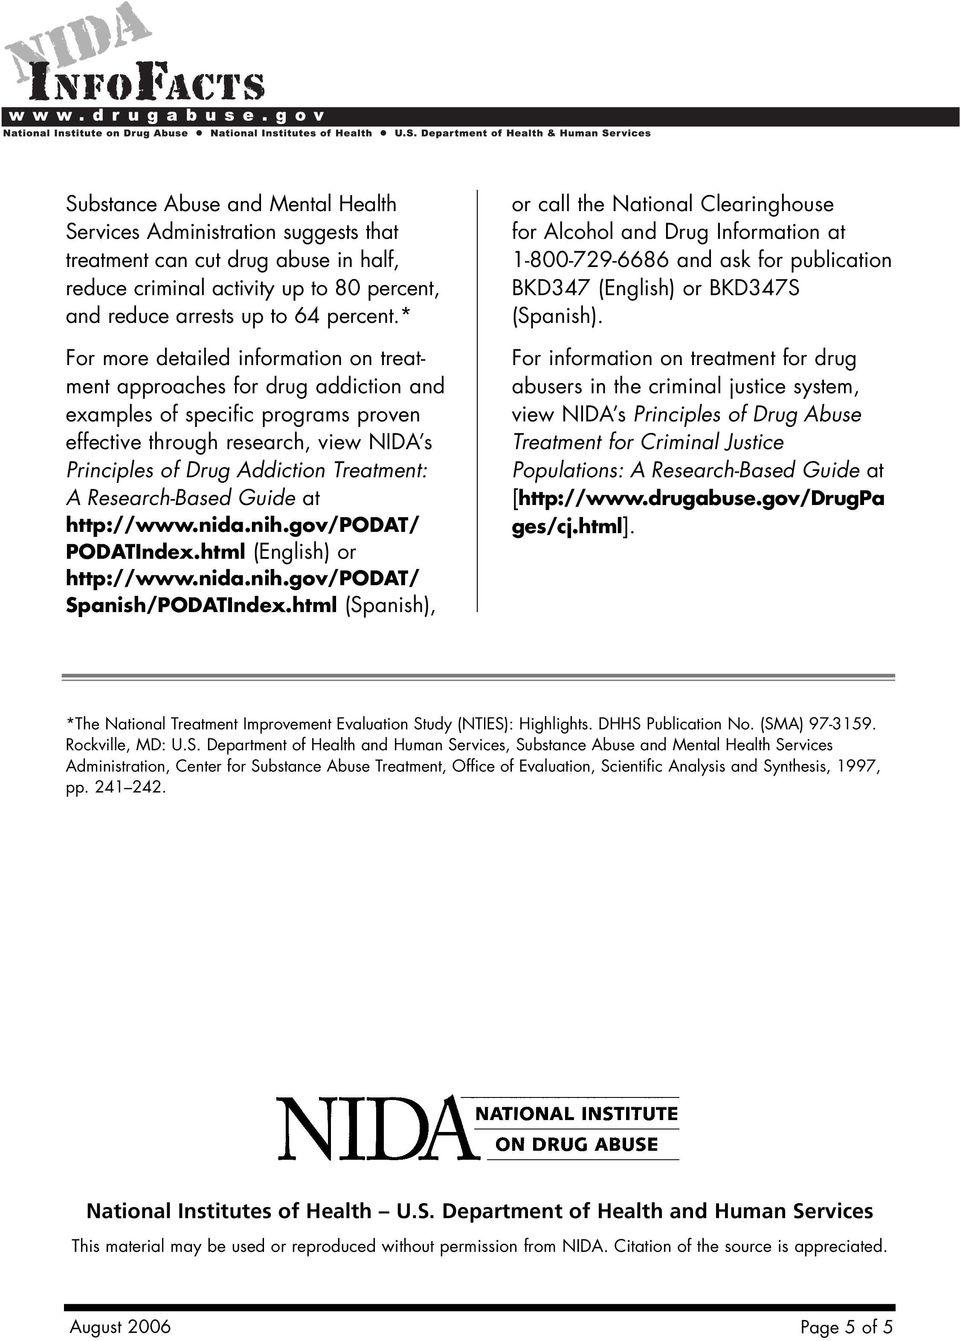 Research-Based Guide at http://www.nida.nih.gov/podat/ PODATIndex.html (English) or http://www.nida.nih.gov/podat/ Spanish/PODATIndex.